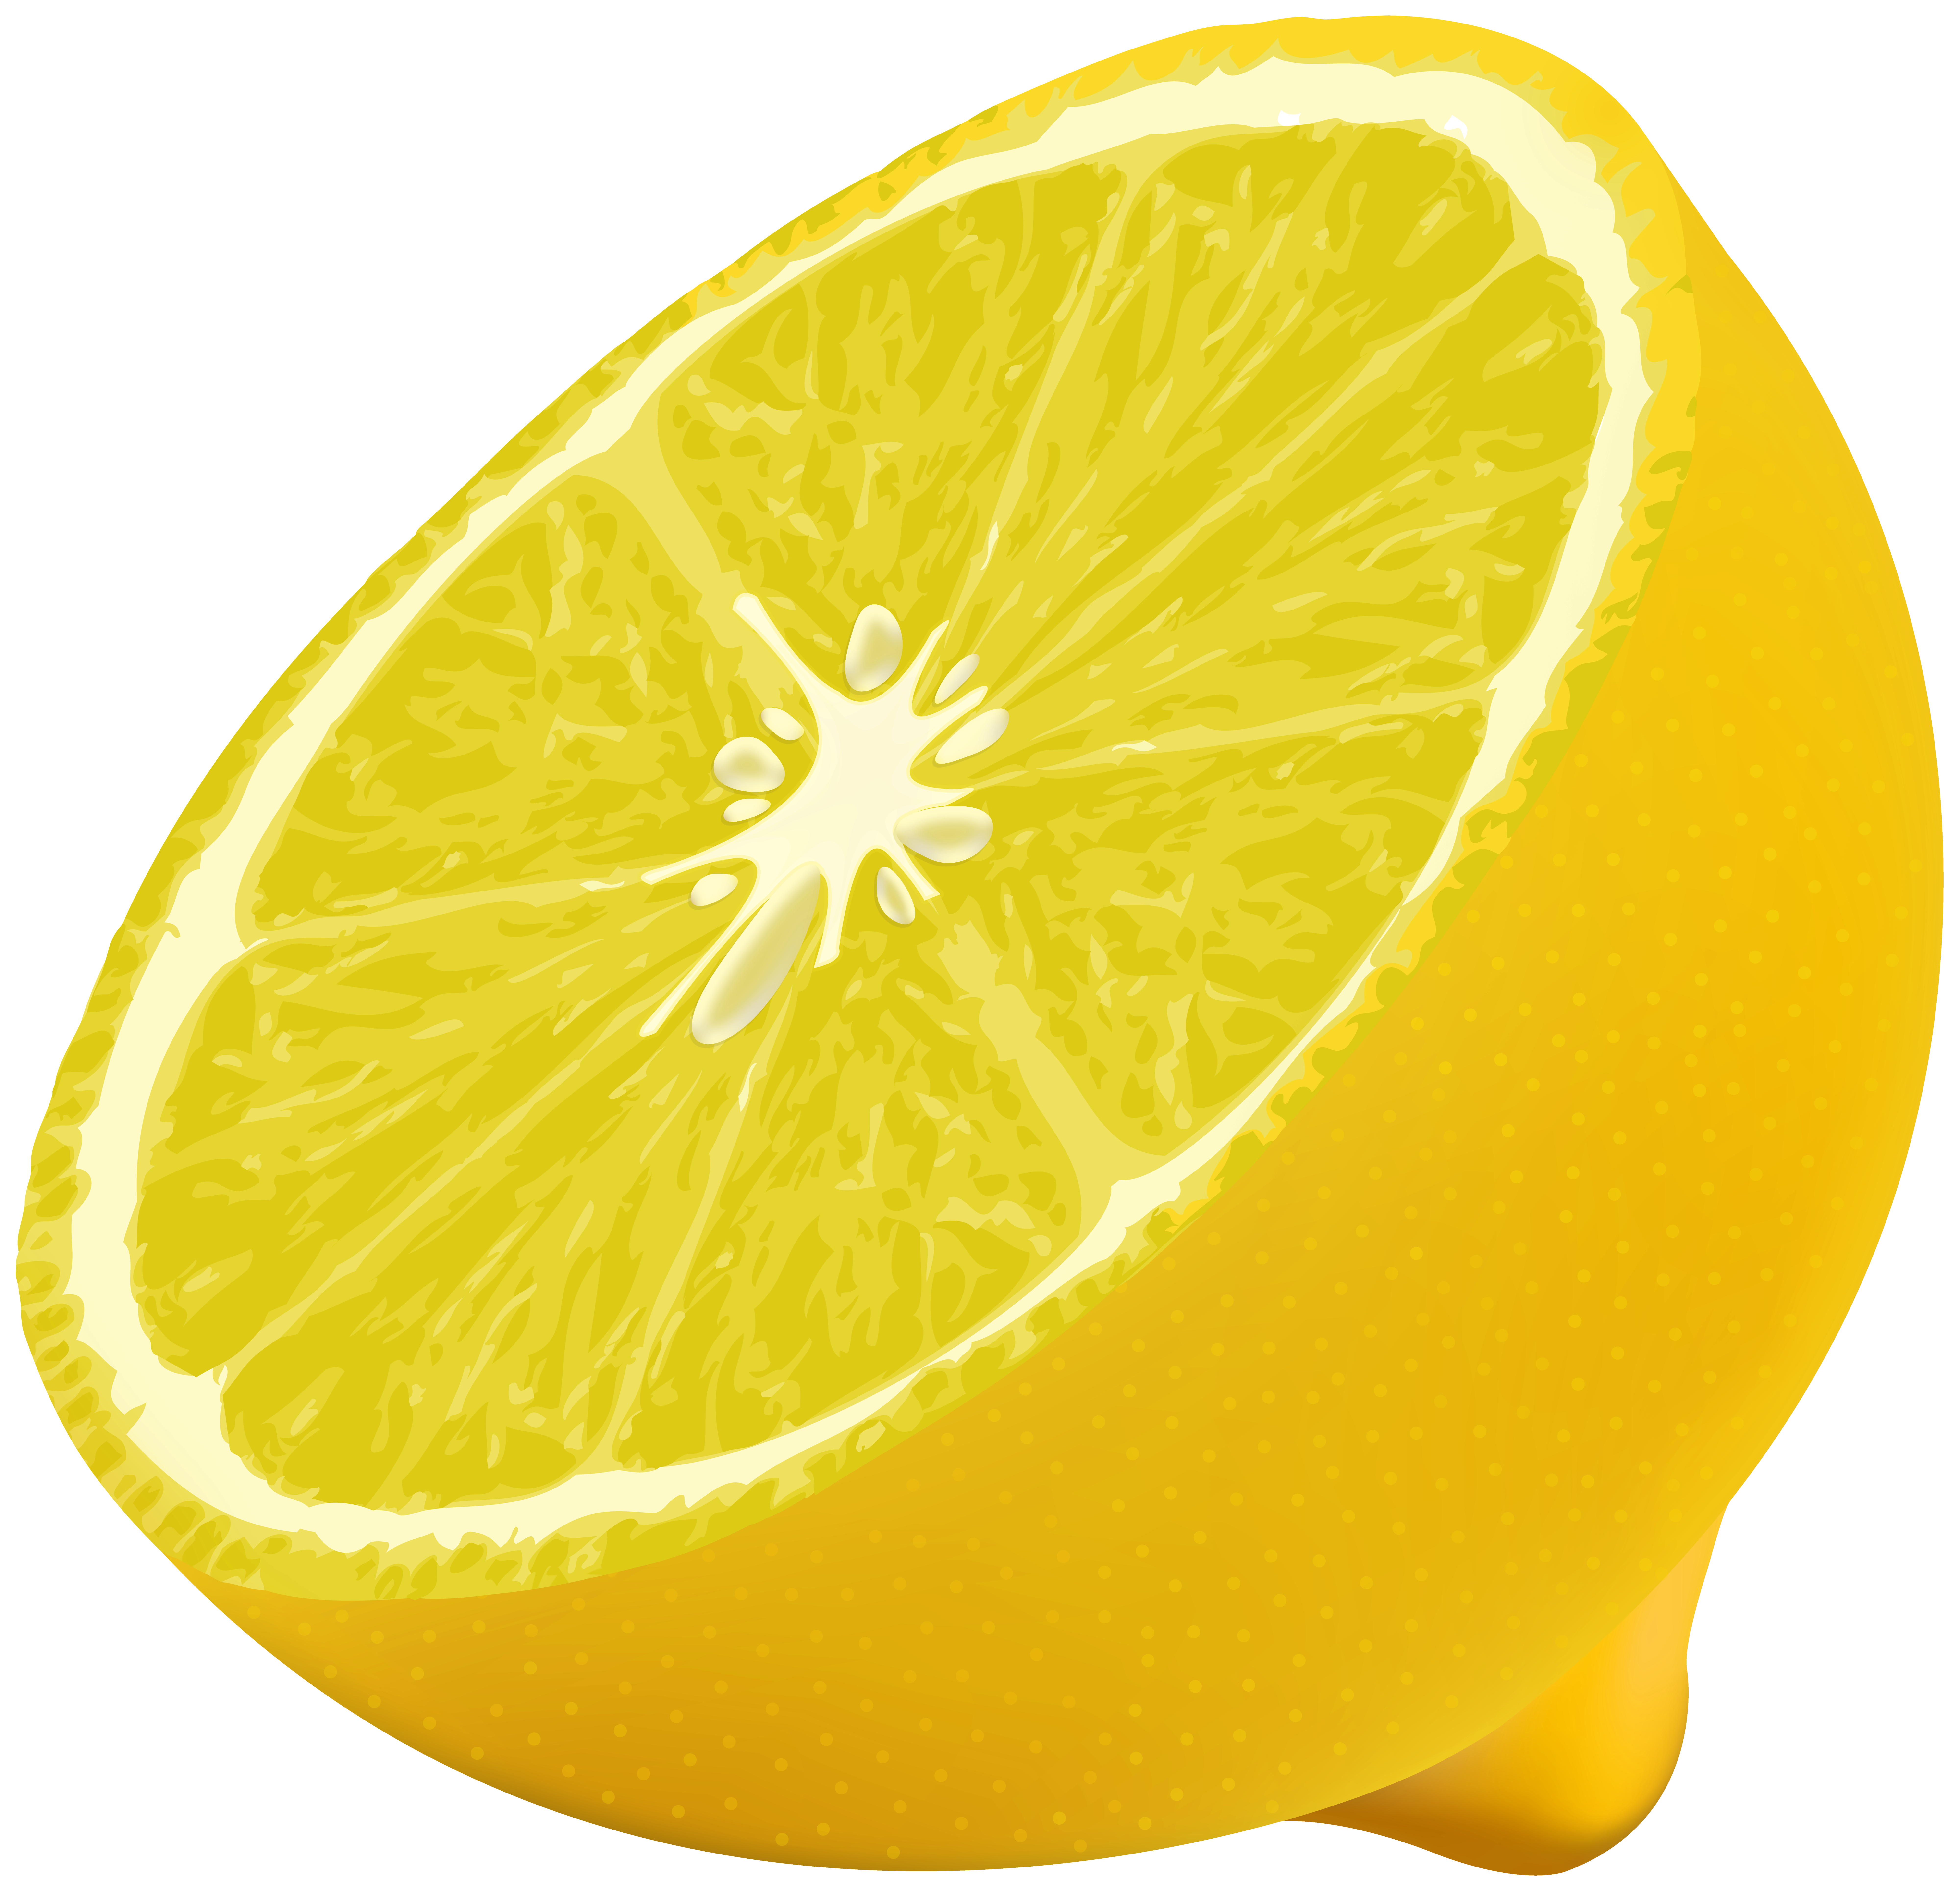 Half lemon png image. Lemons clipart high resolution